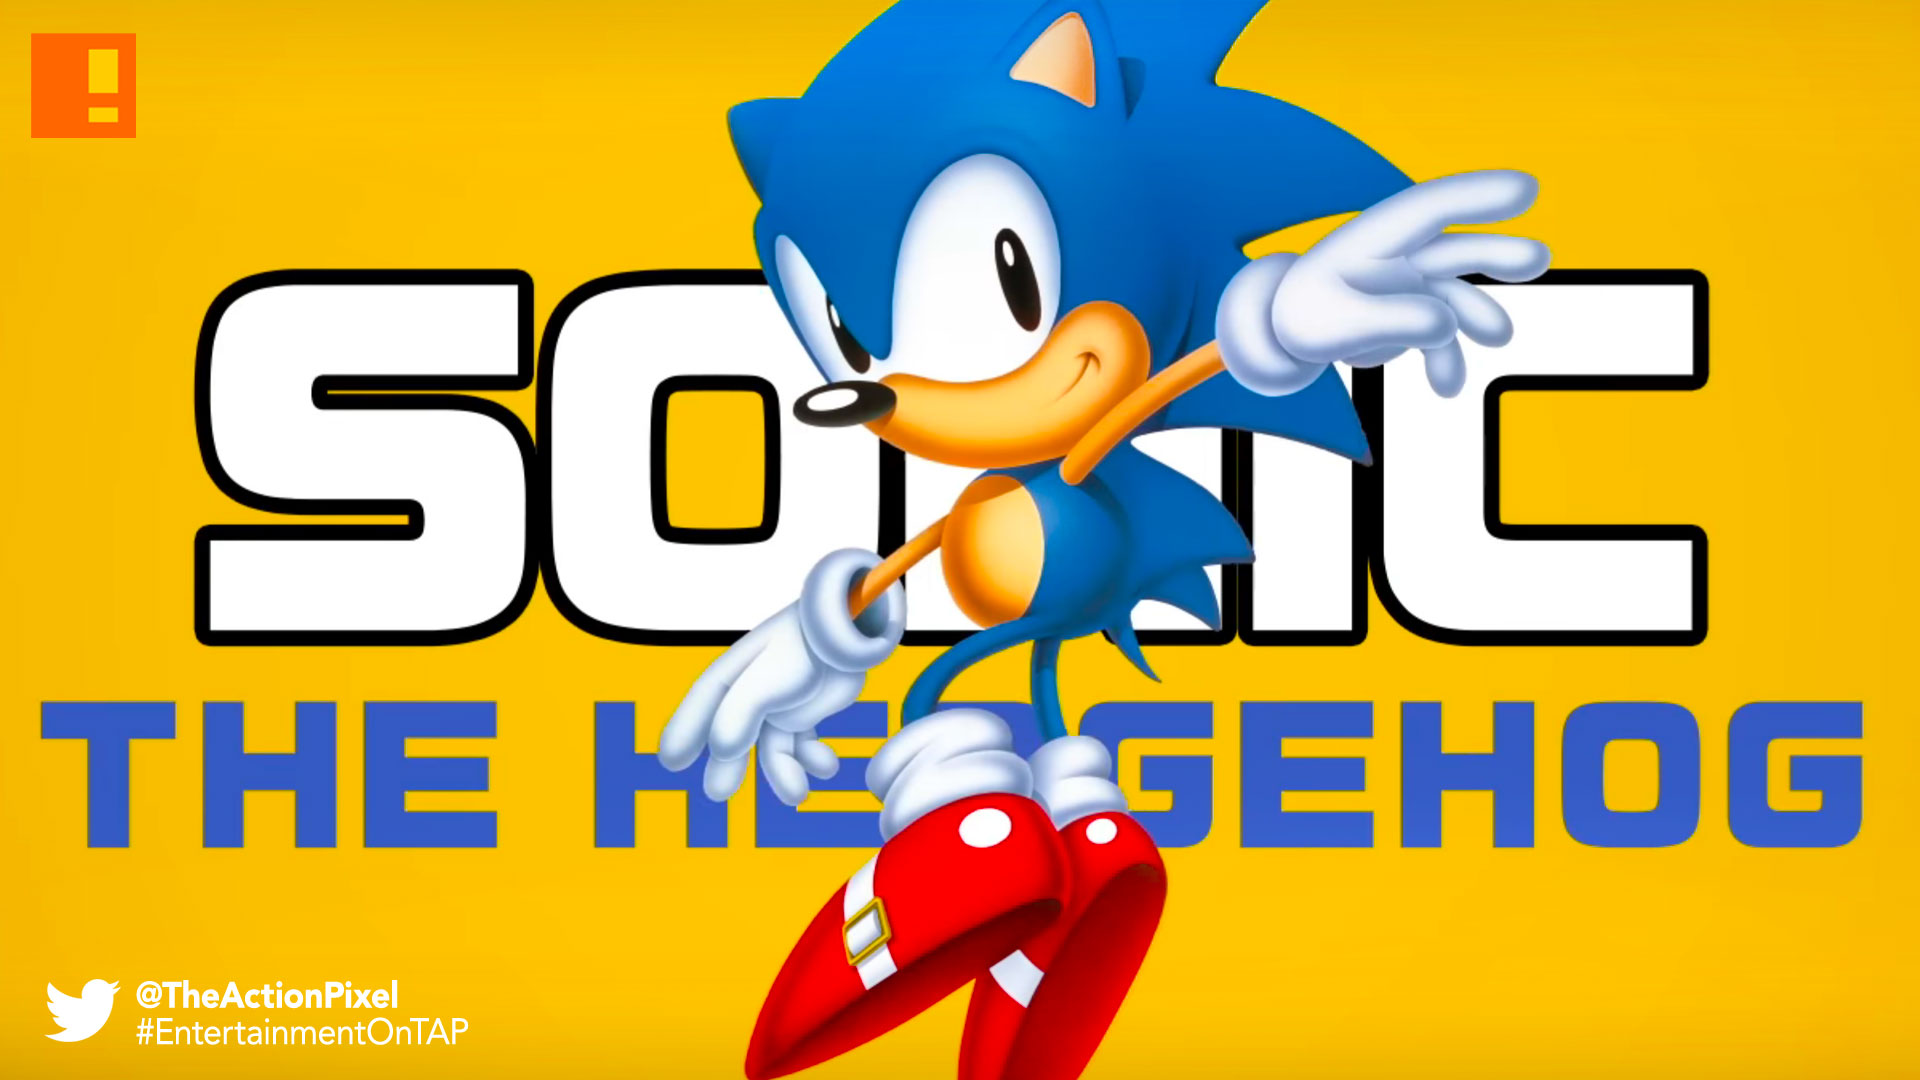 sonic mania, sonic the hedgehog, sonic, sega, the action pixel, tails, knuckles, dr. eggman, the action pixel